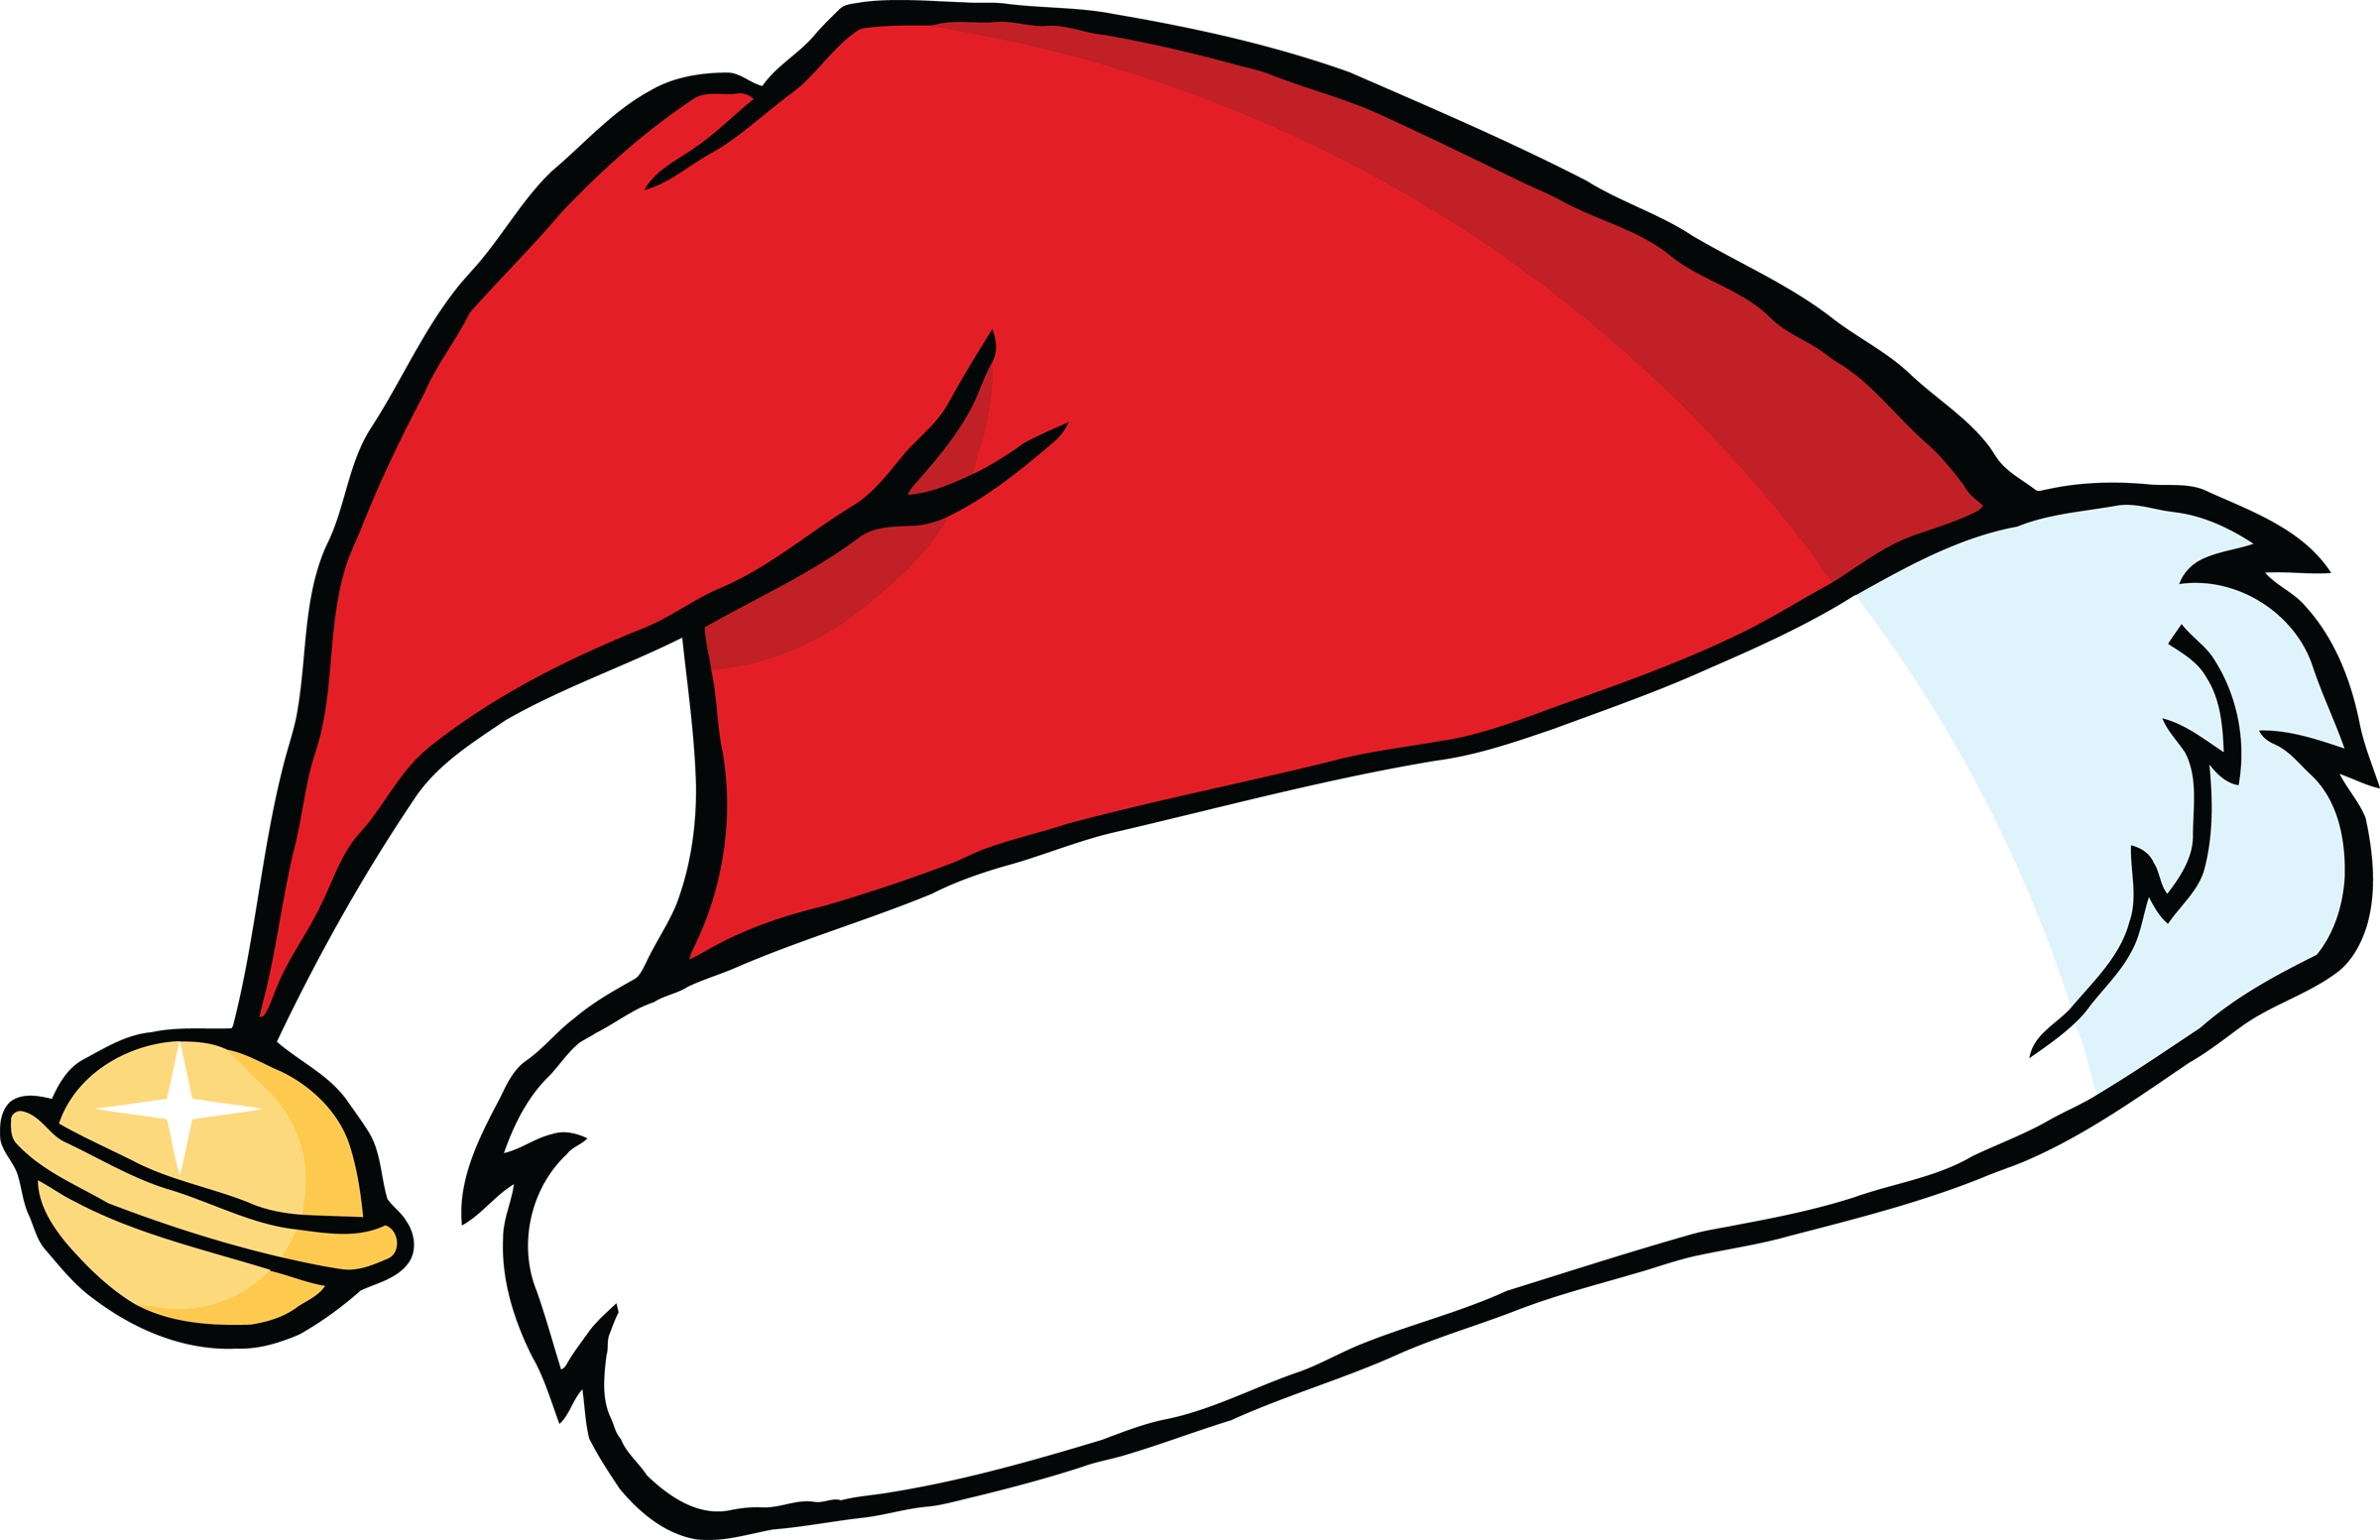 Santa Hat Images - Cliparts.co